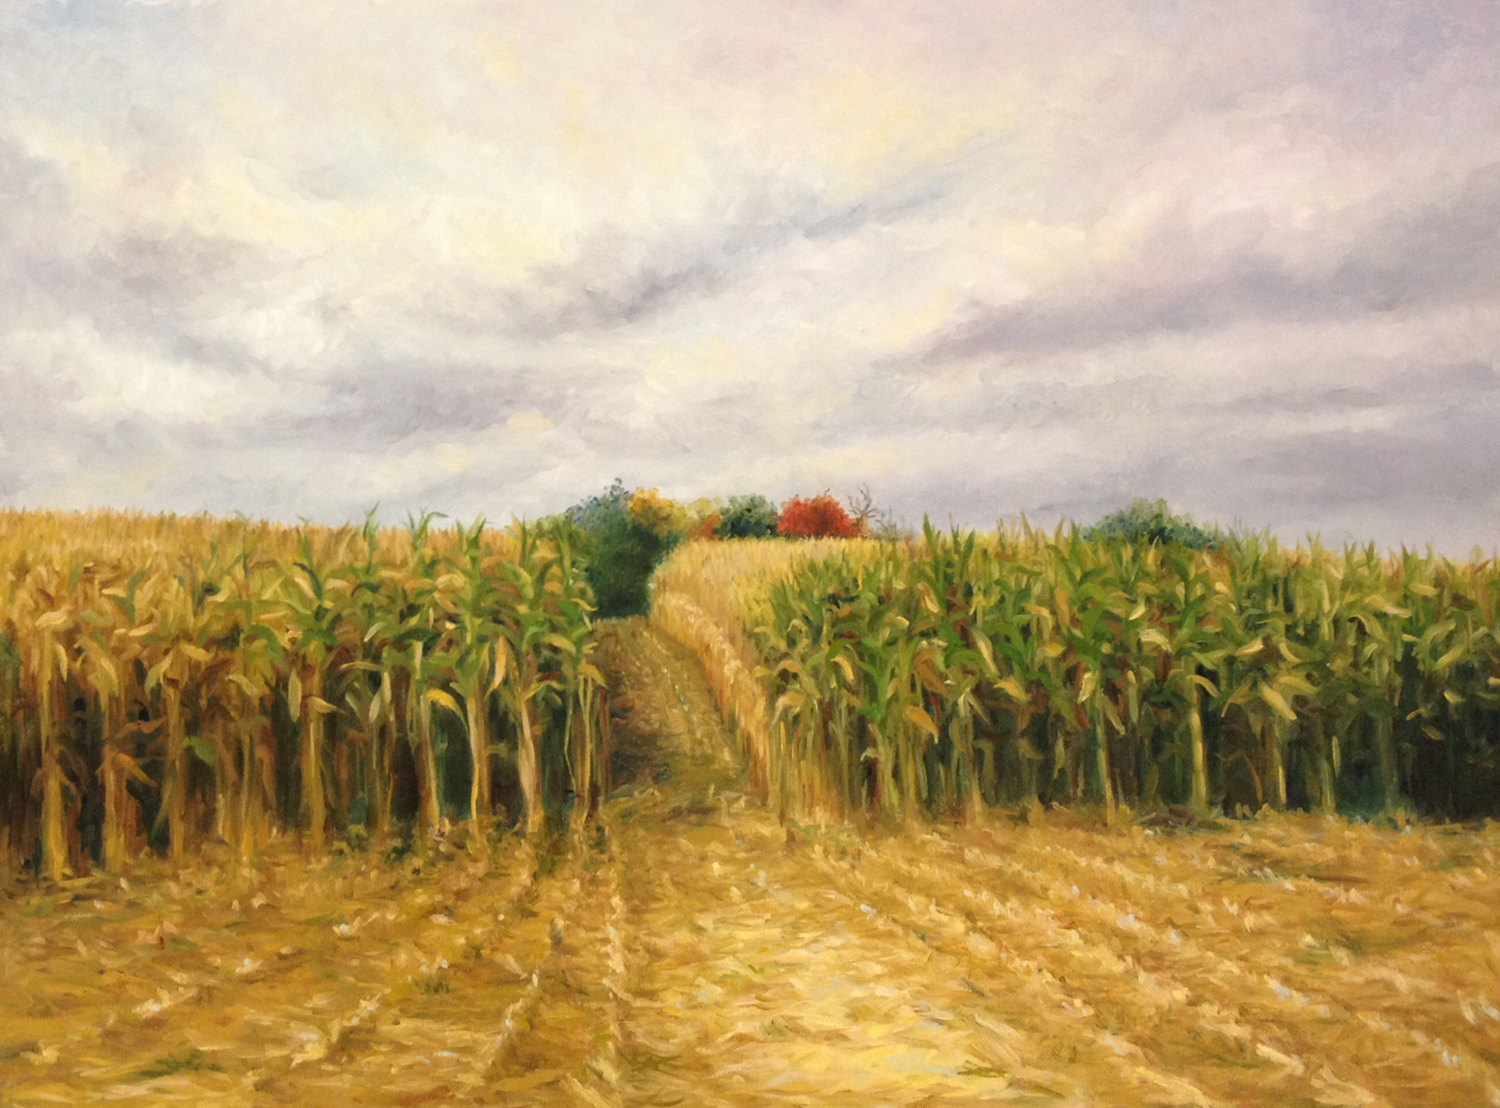 Strazza Impressionistic Paintings